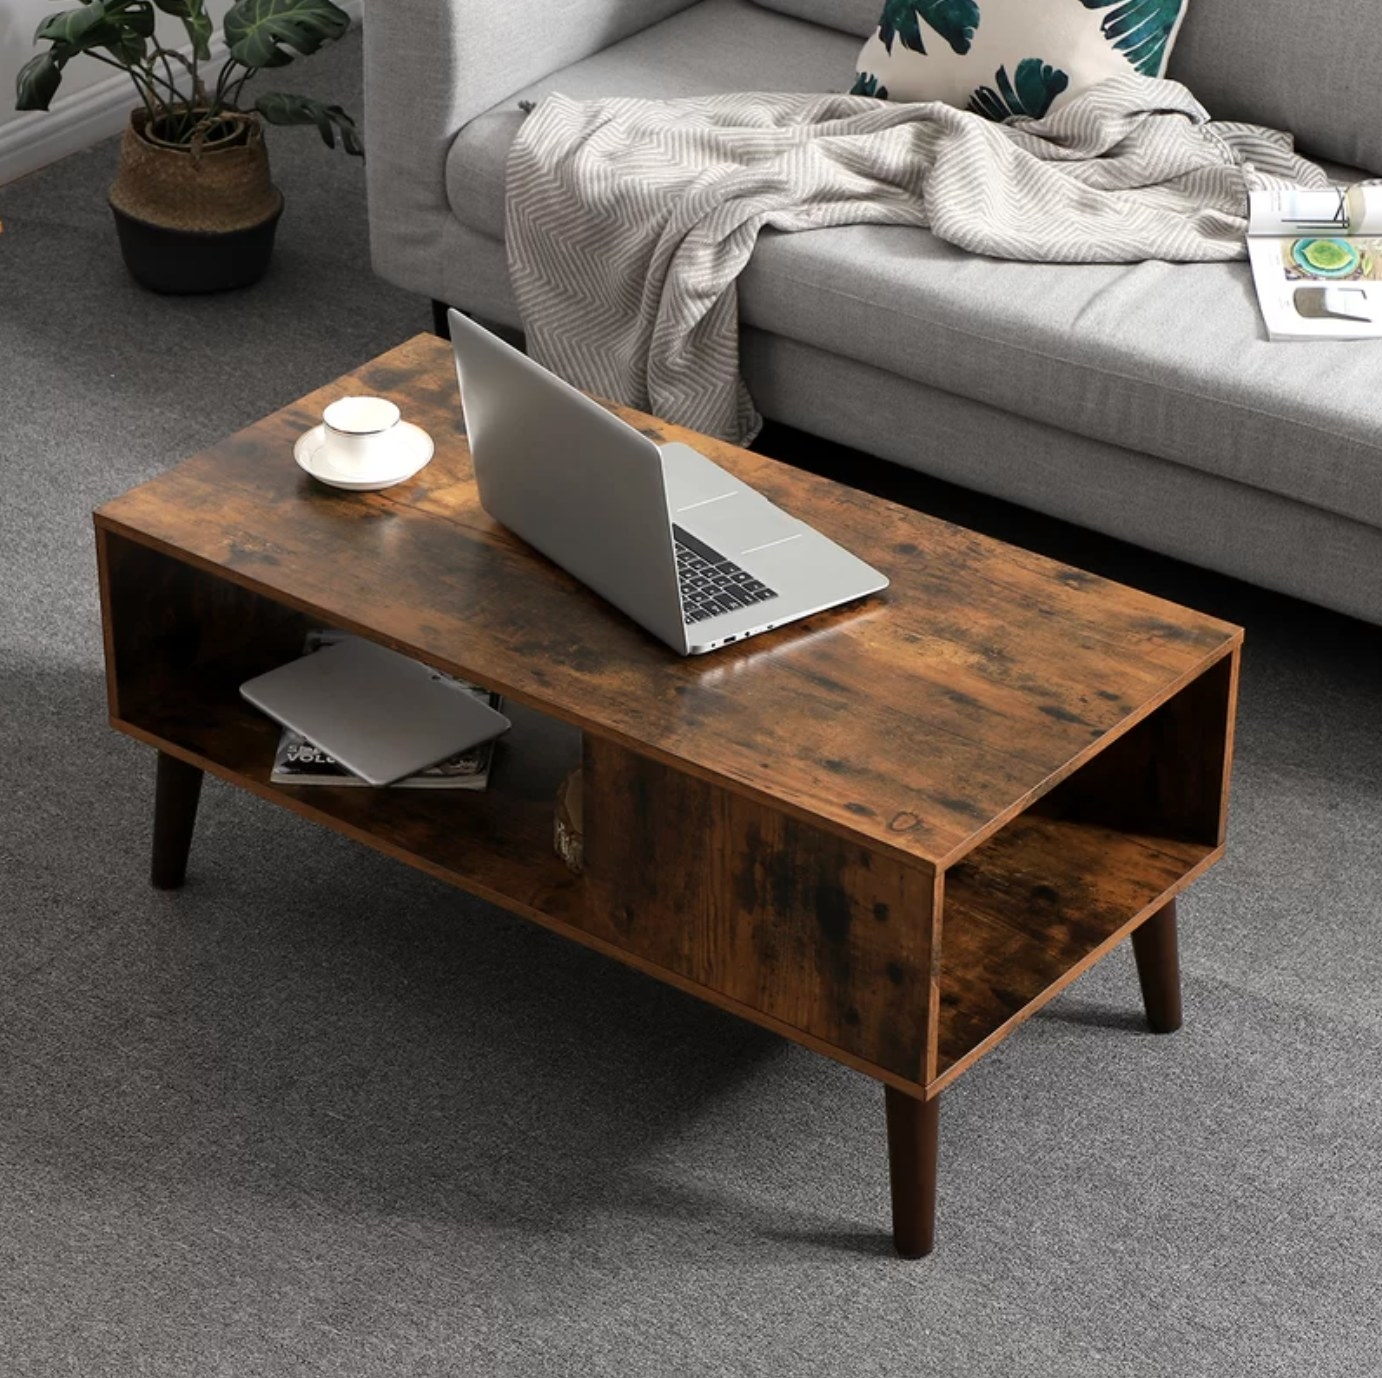 The coffee table with storage in rustic brown